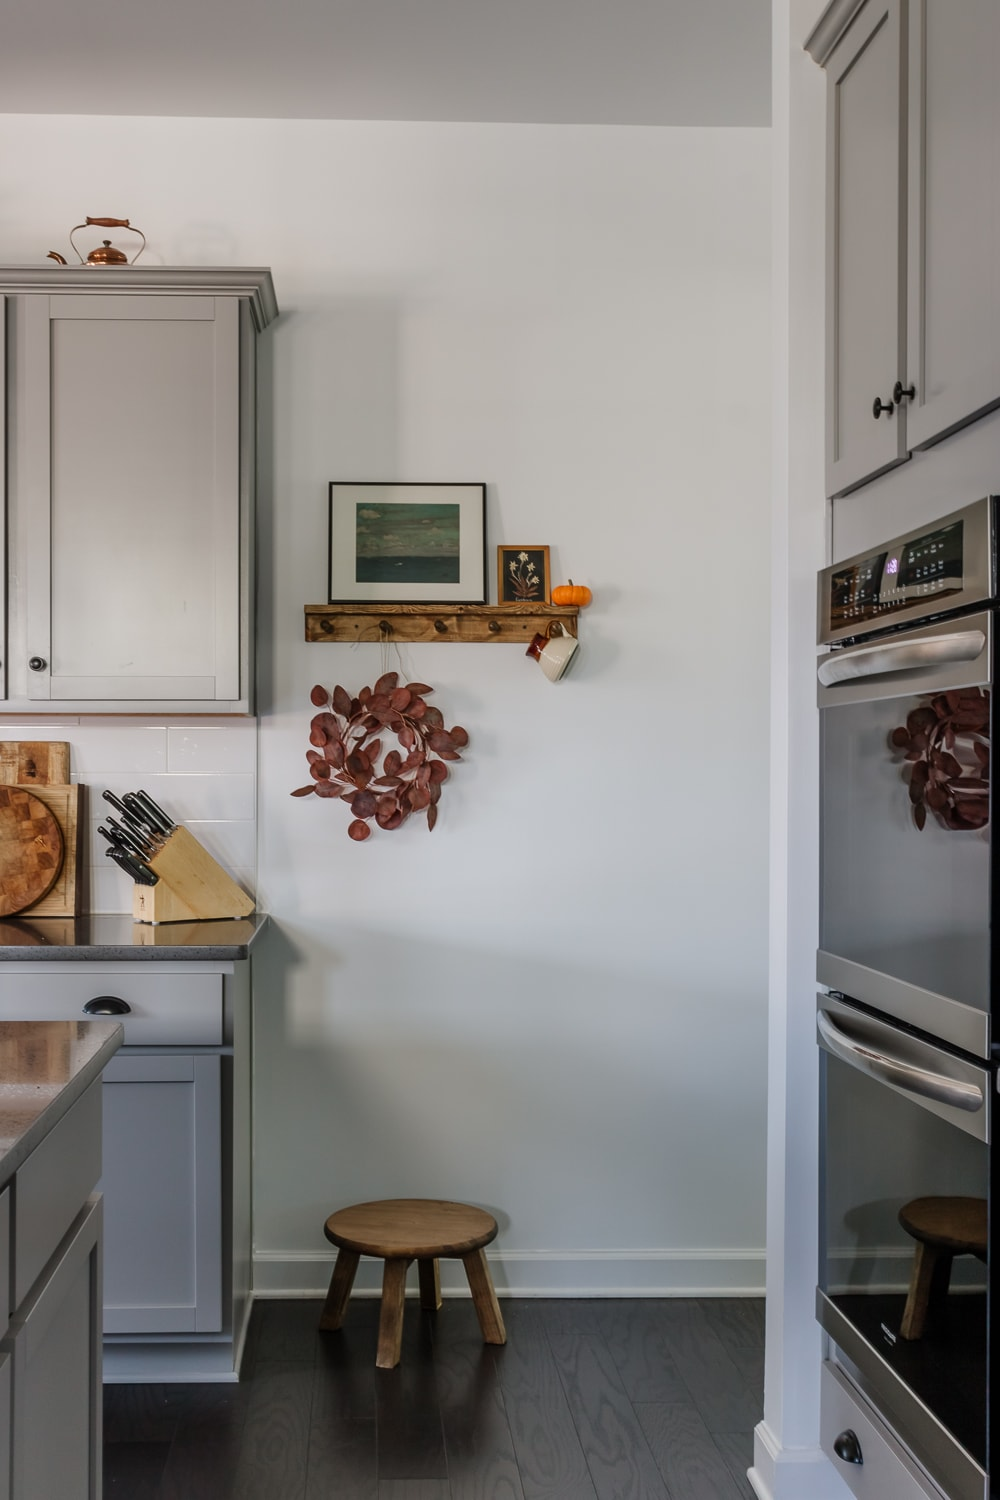 shaker style peg rail with shelf in a kitchen - how to tutorial in post